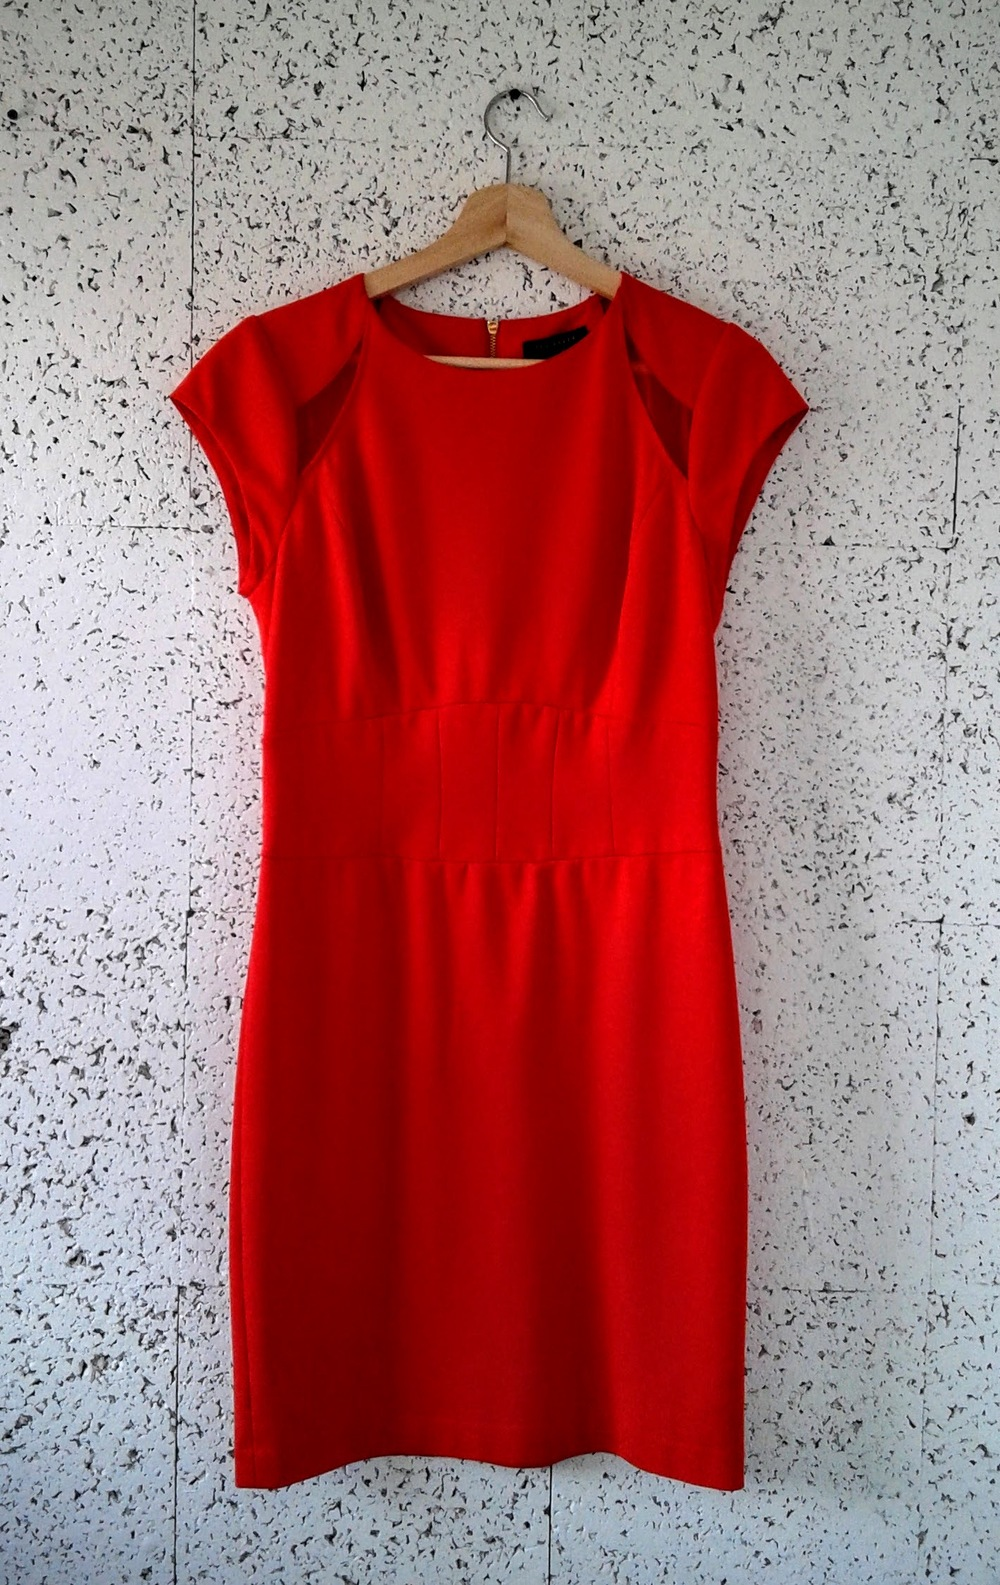 Ted Baker dress; Size S, $72